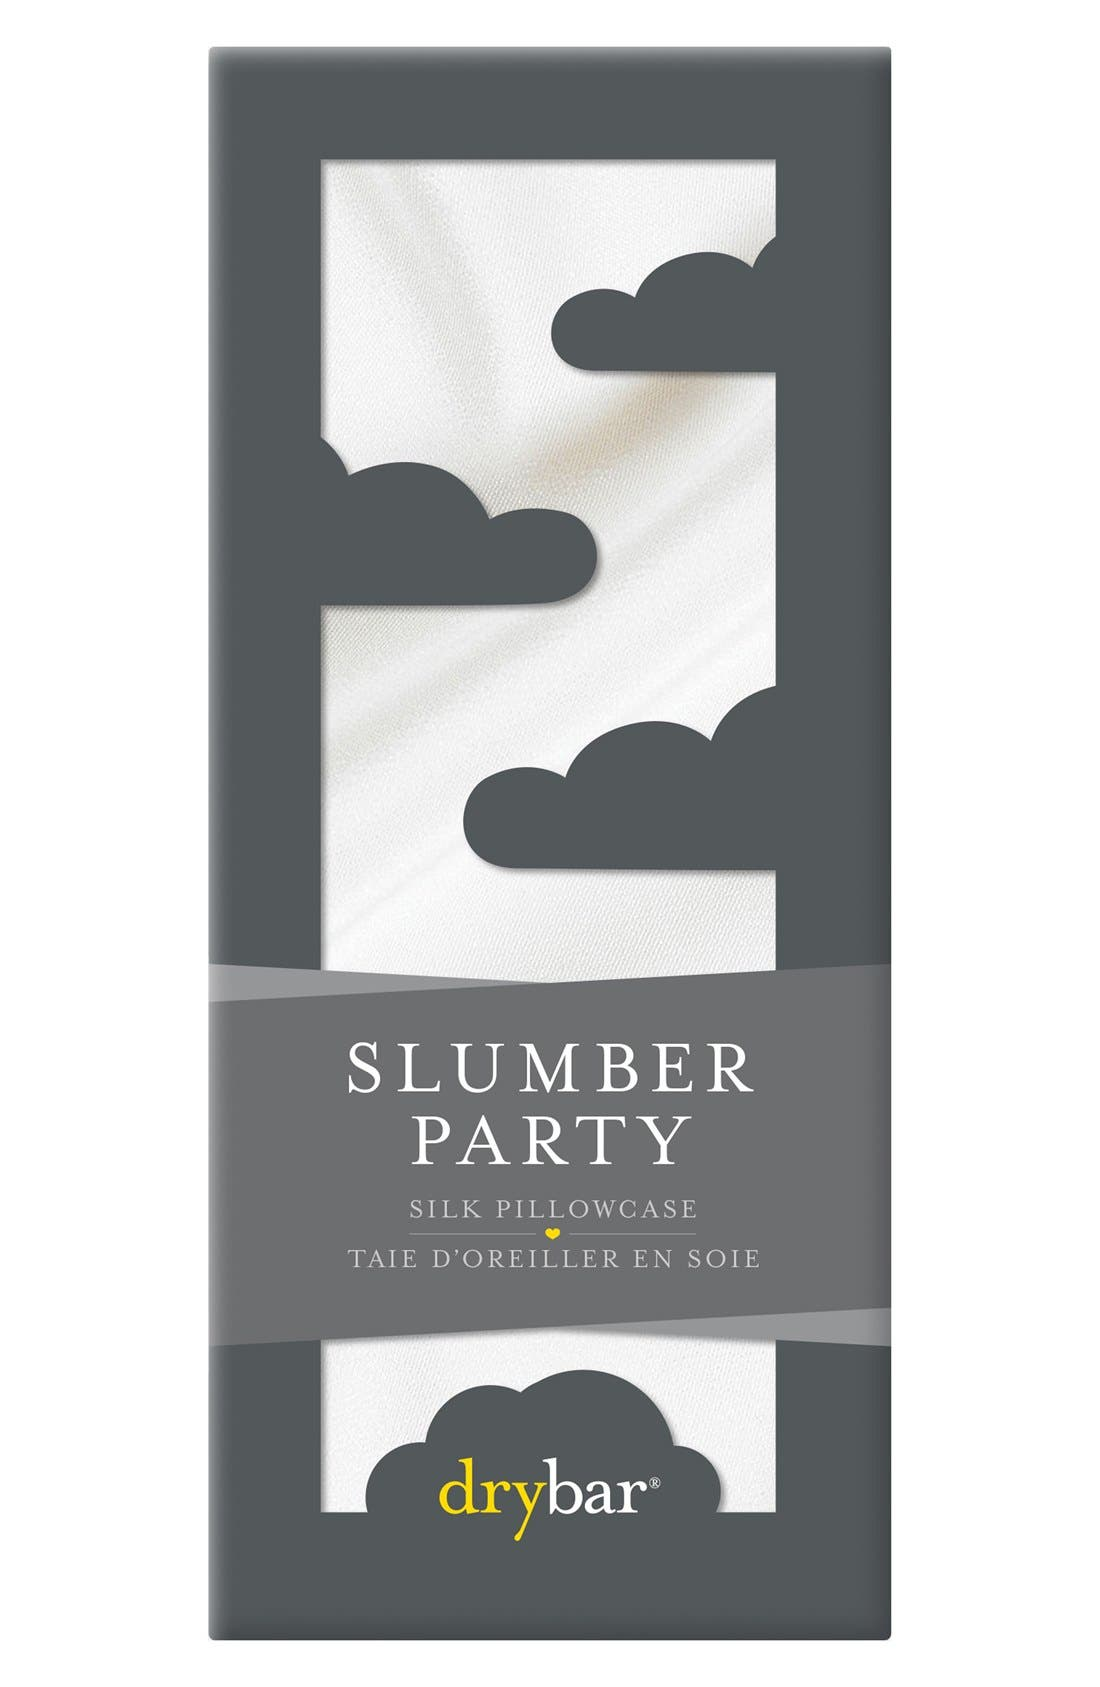 Drybar 'Slumber Party' Silk Pillowcase